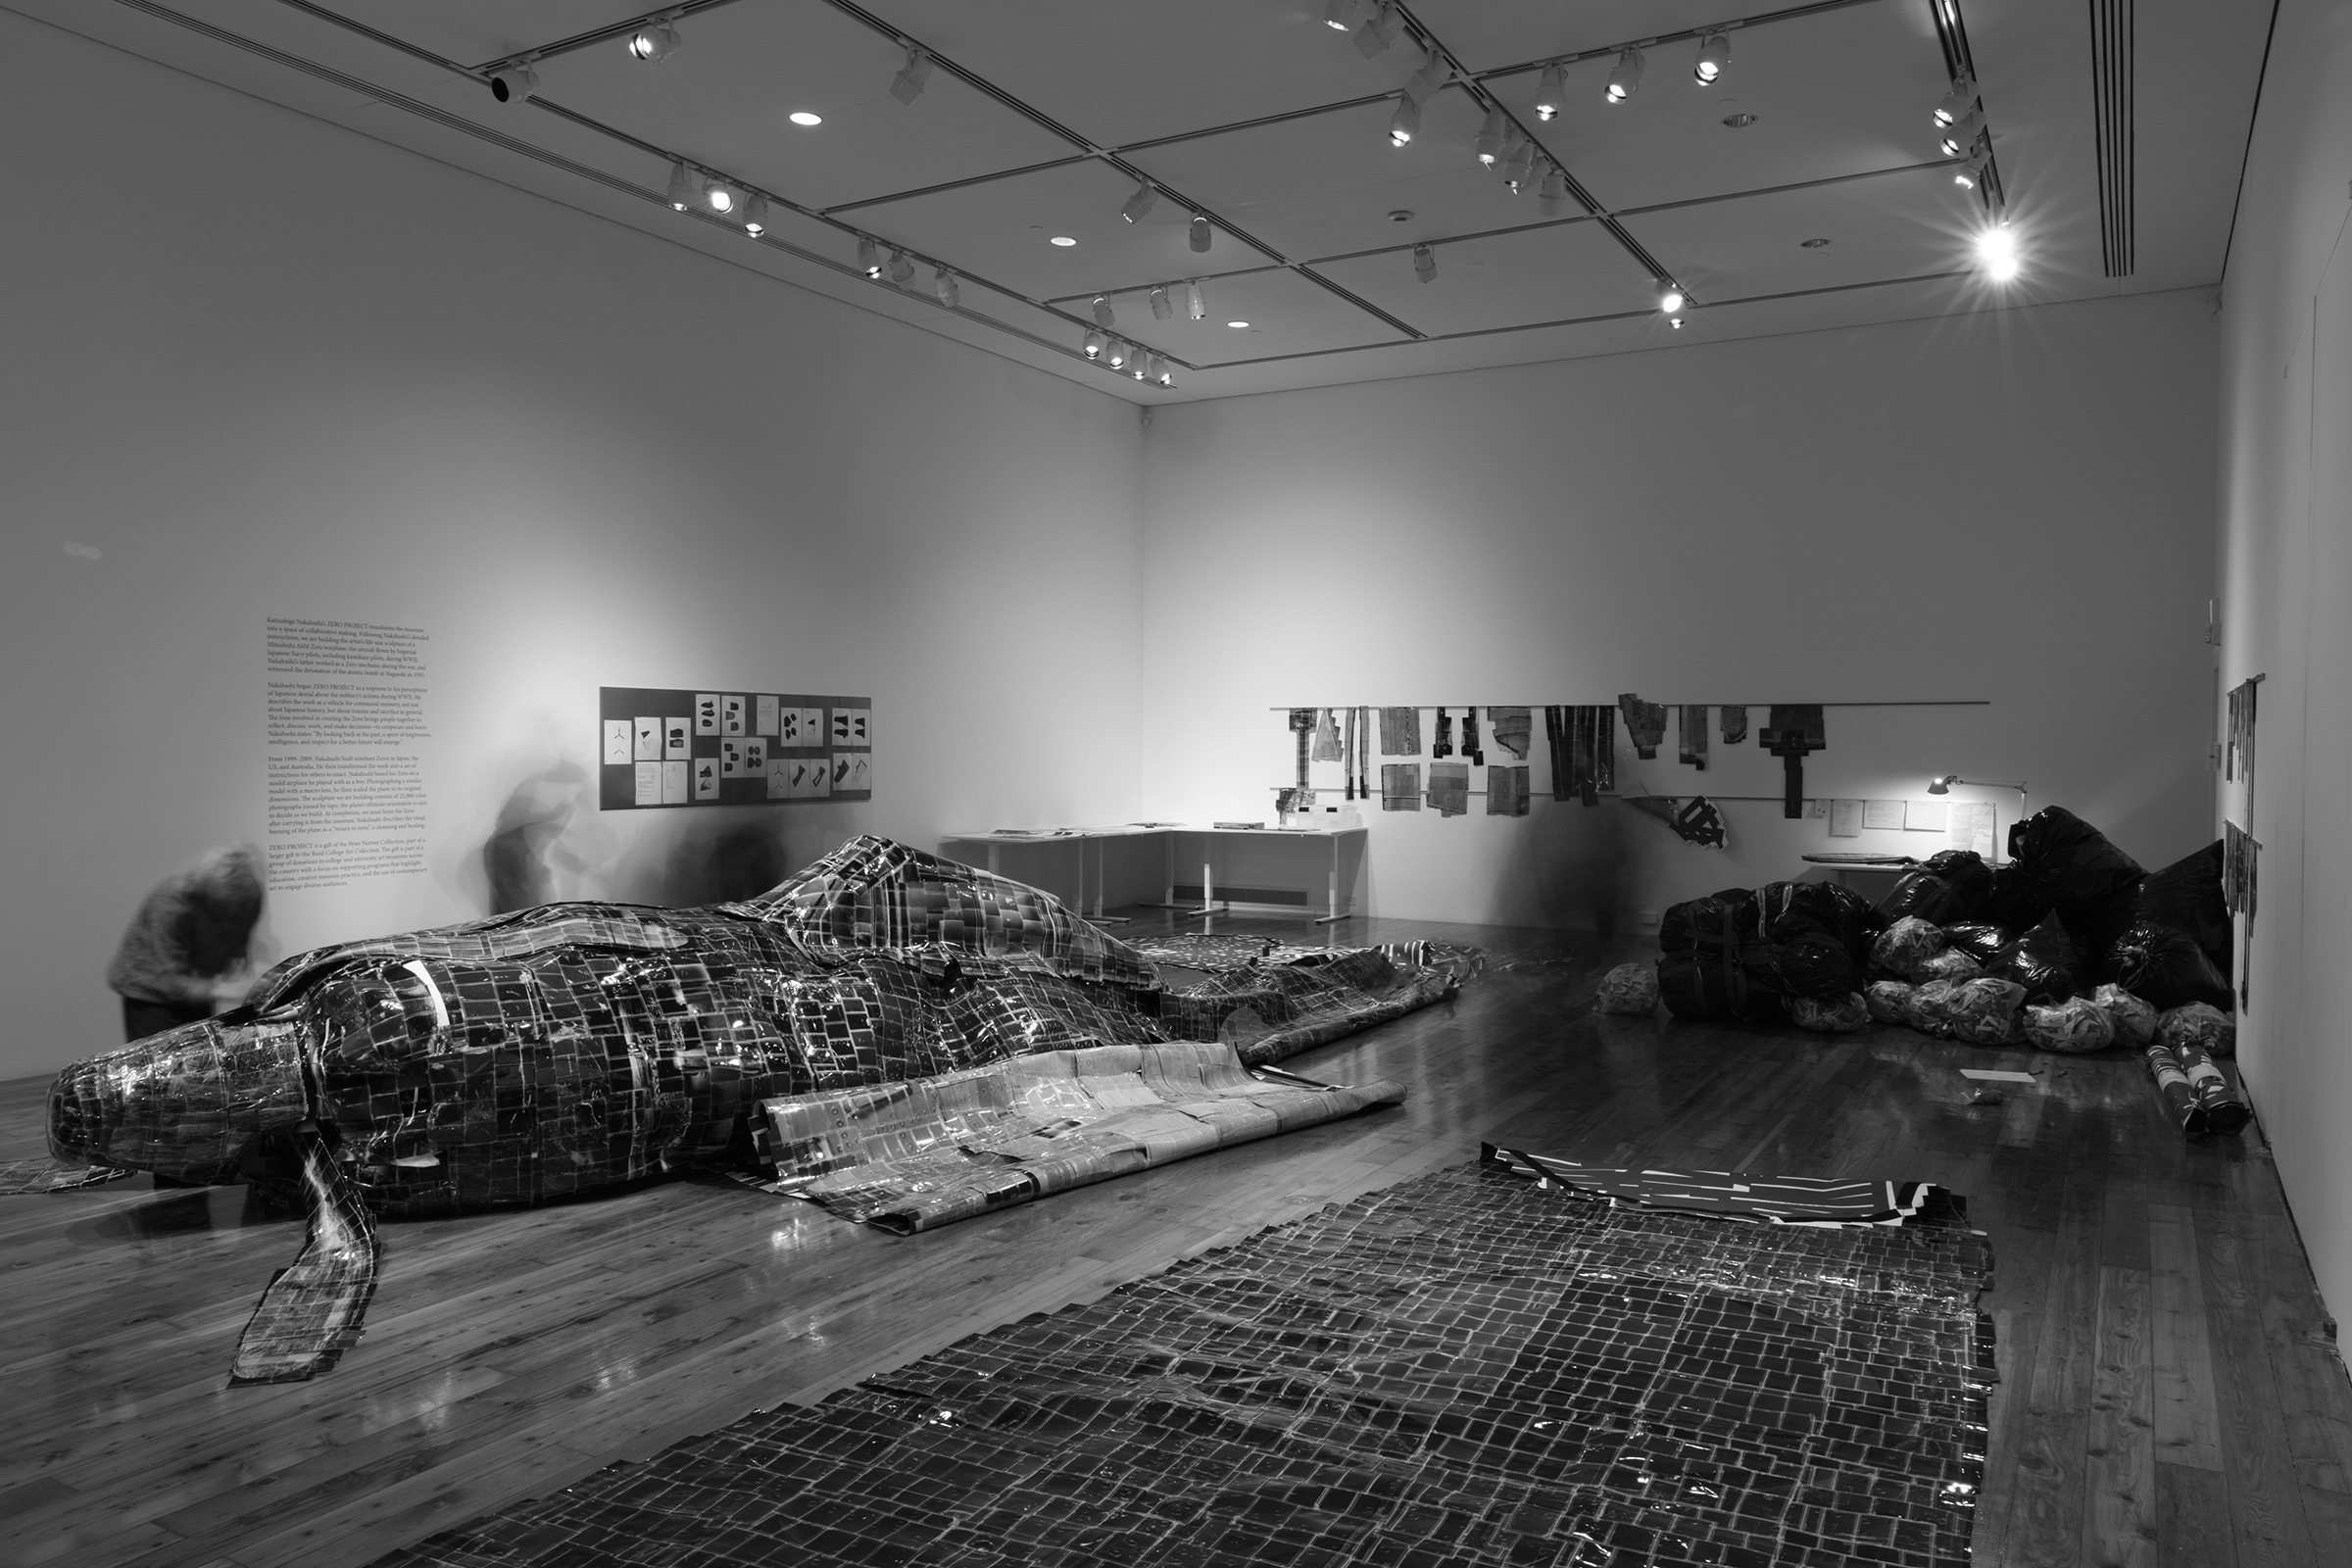 Construction of the Zero Project in the Cooley Gallery